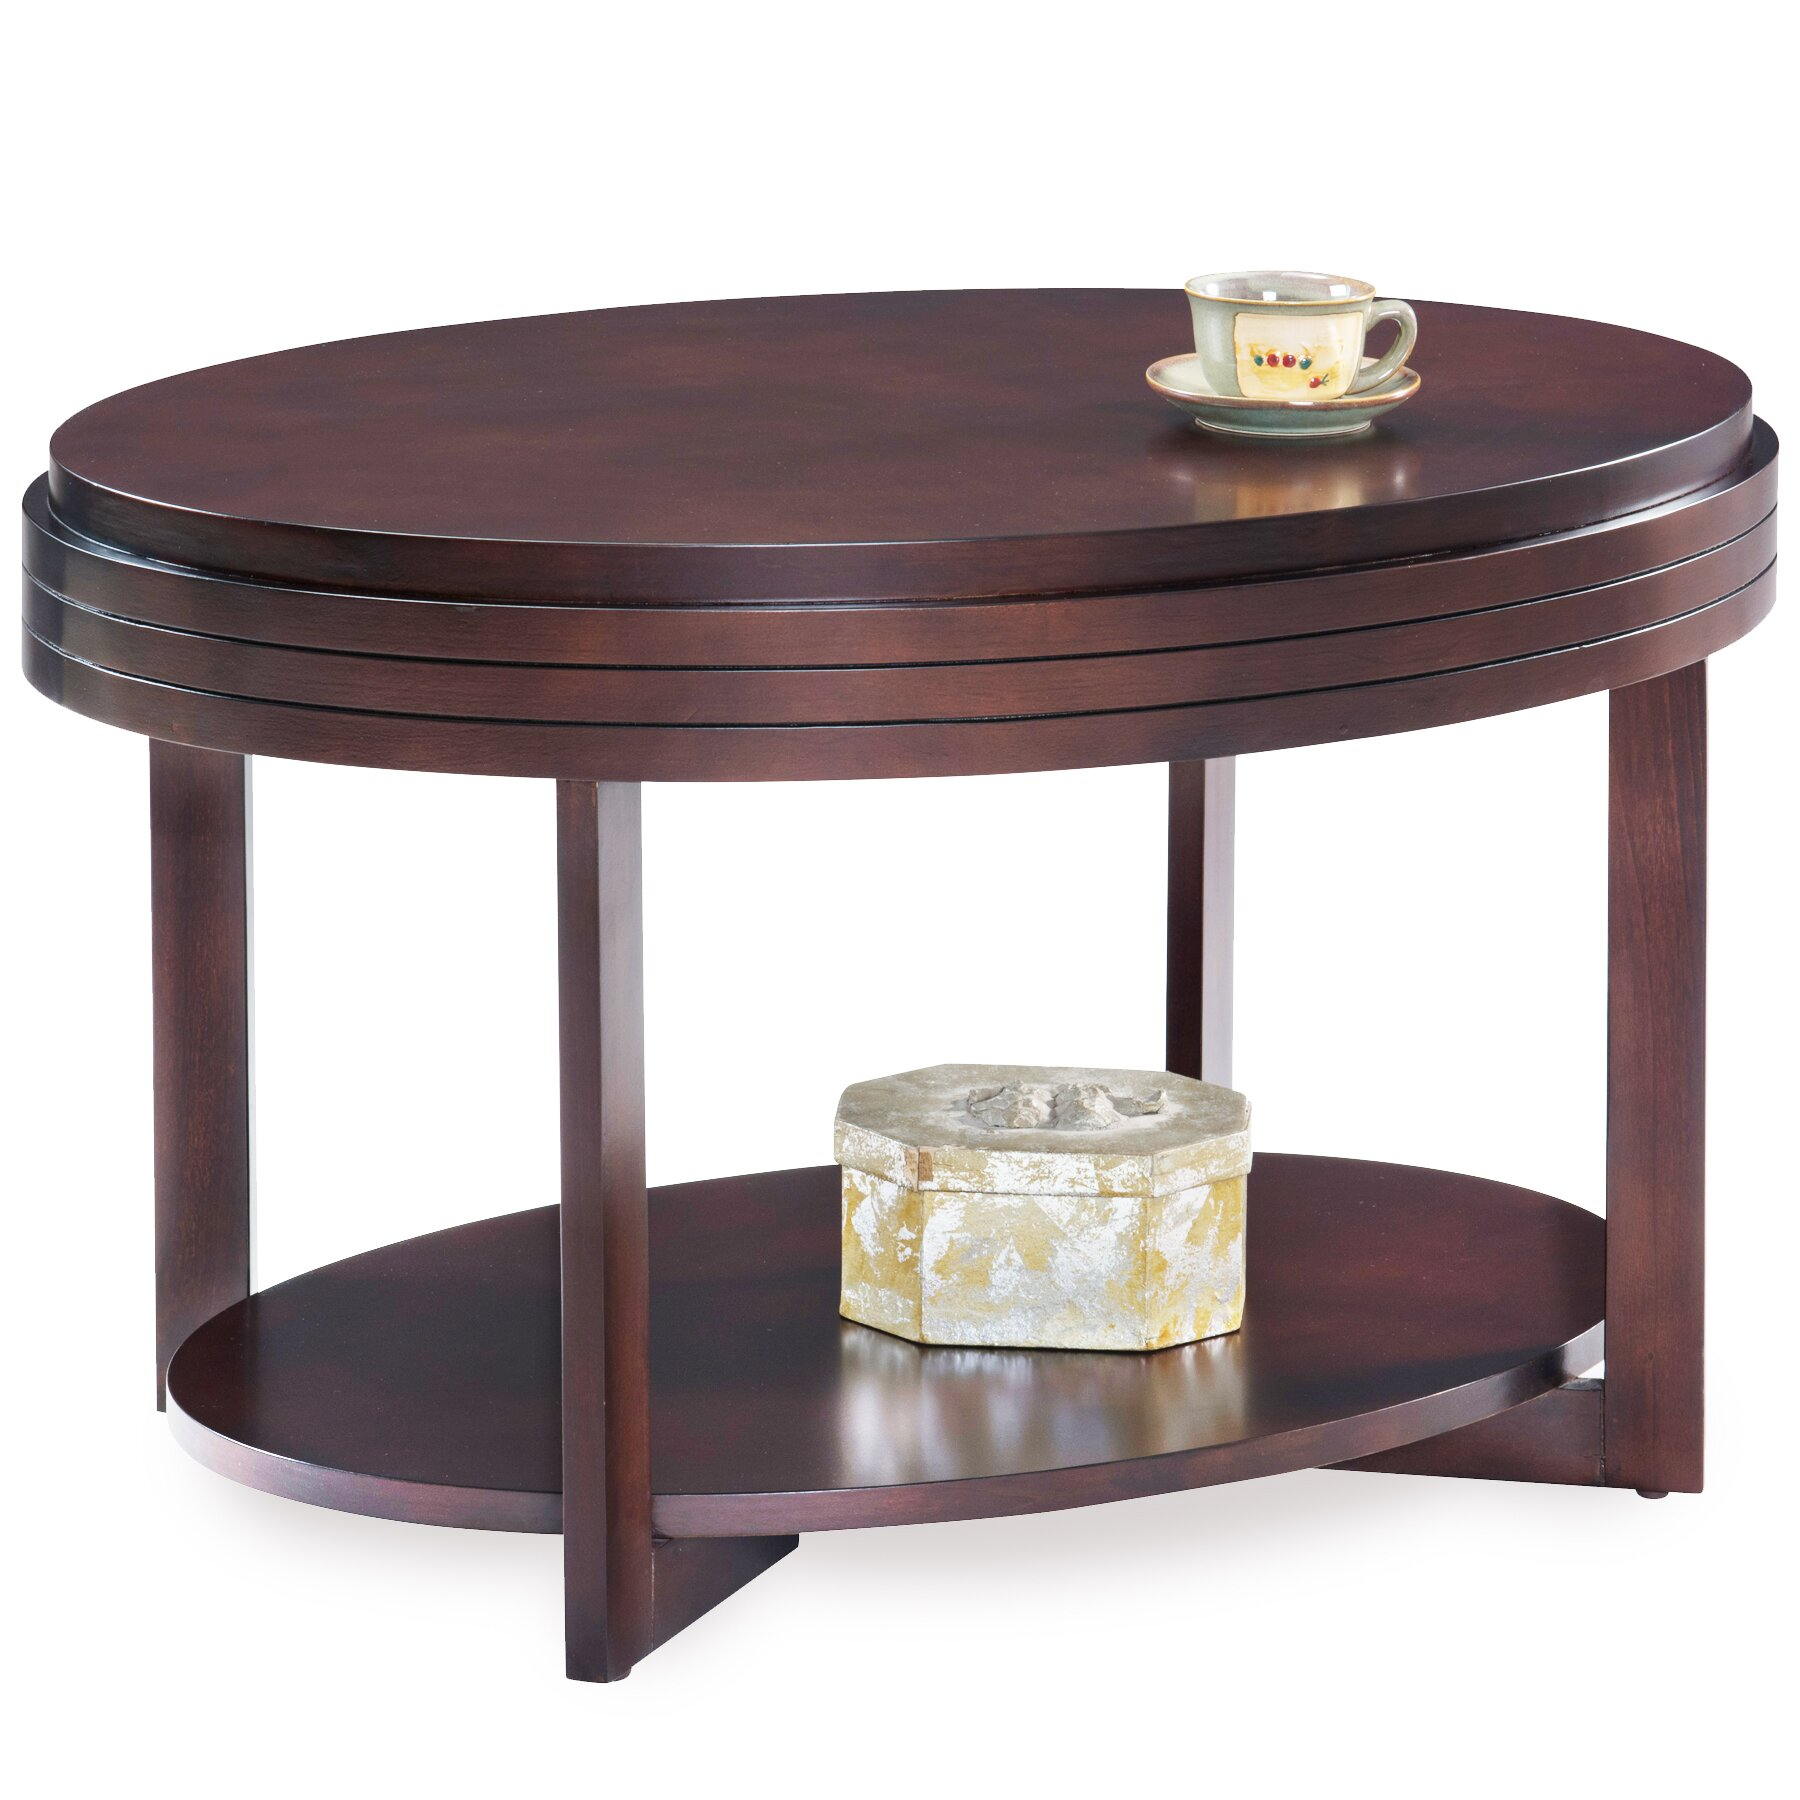 Charlton Home Apple Valley Coffee Table & Reviews